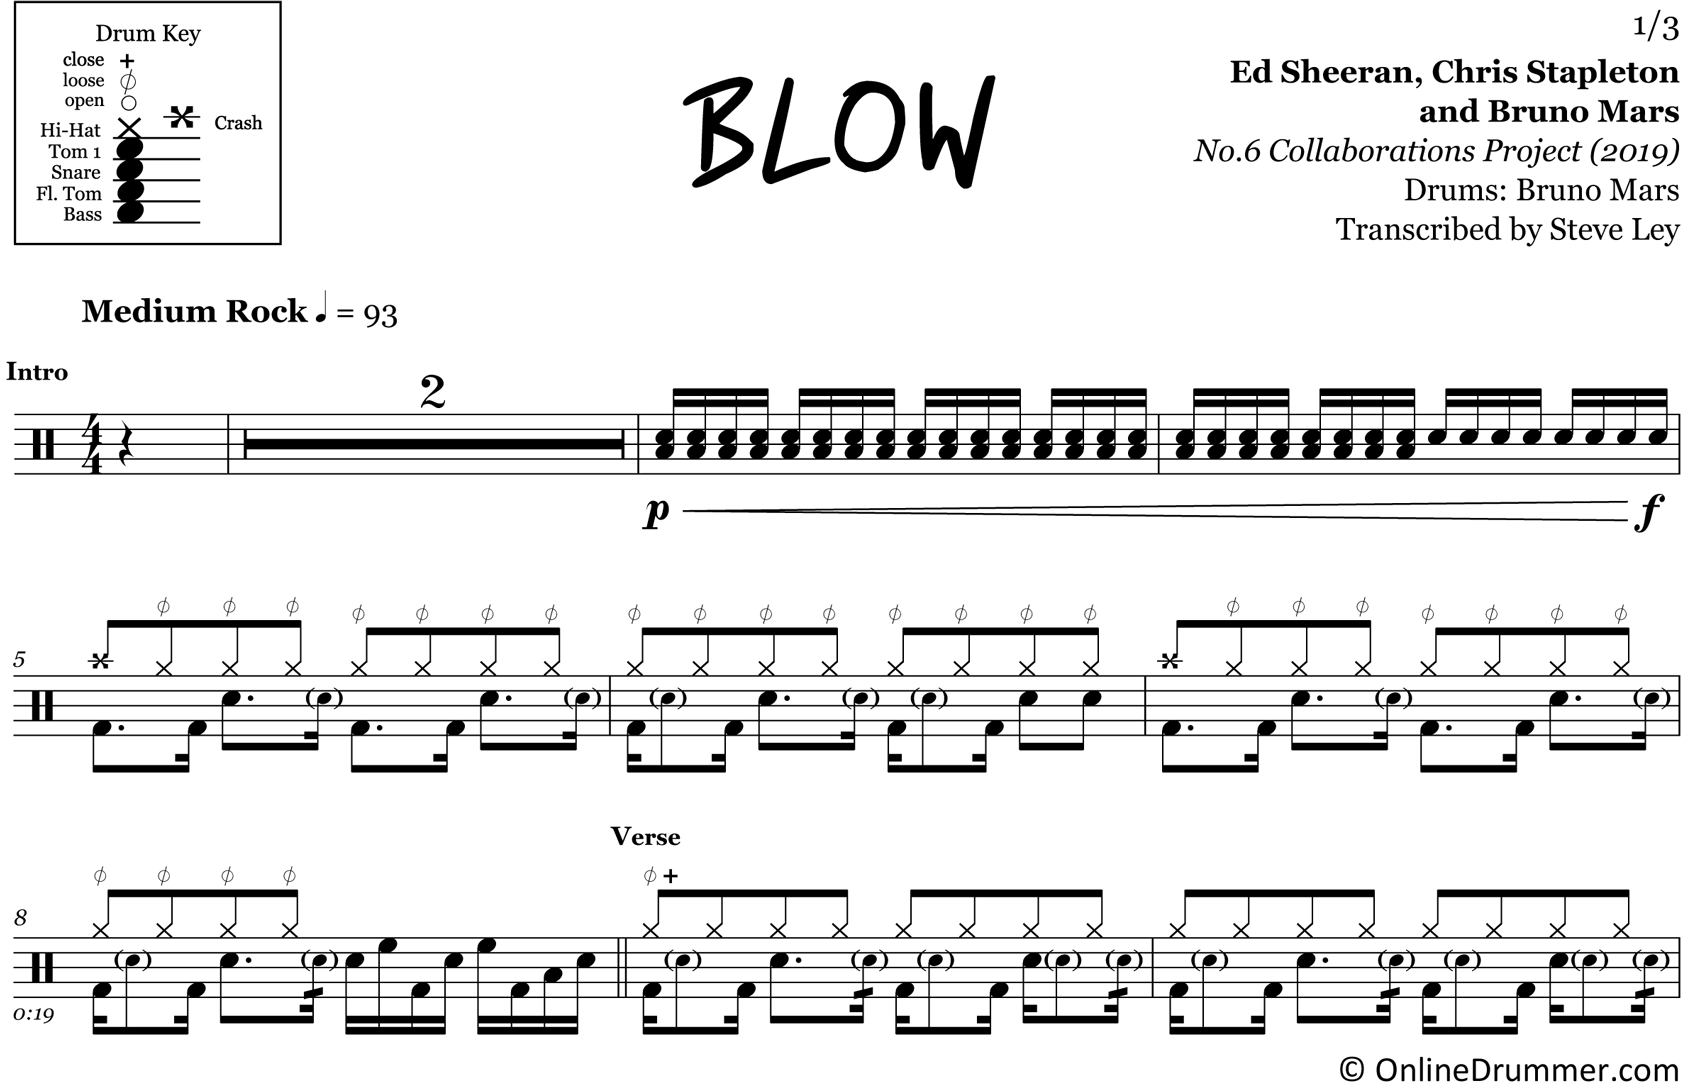 Blow - Ed Sheeran, Chris Stapleton and Bruno Mars - Drum Sheet Music